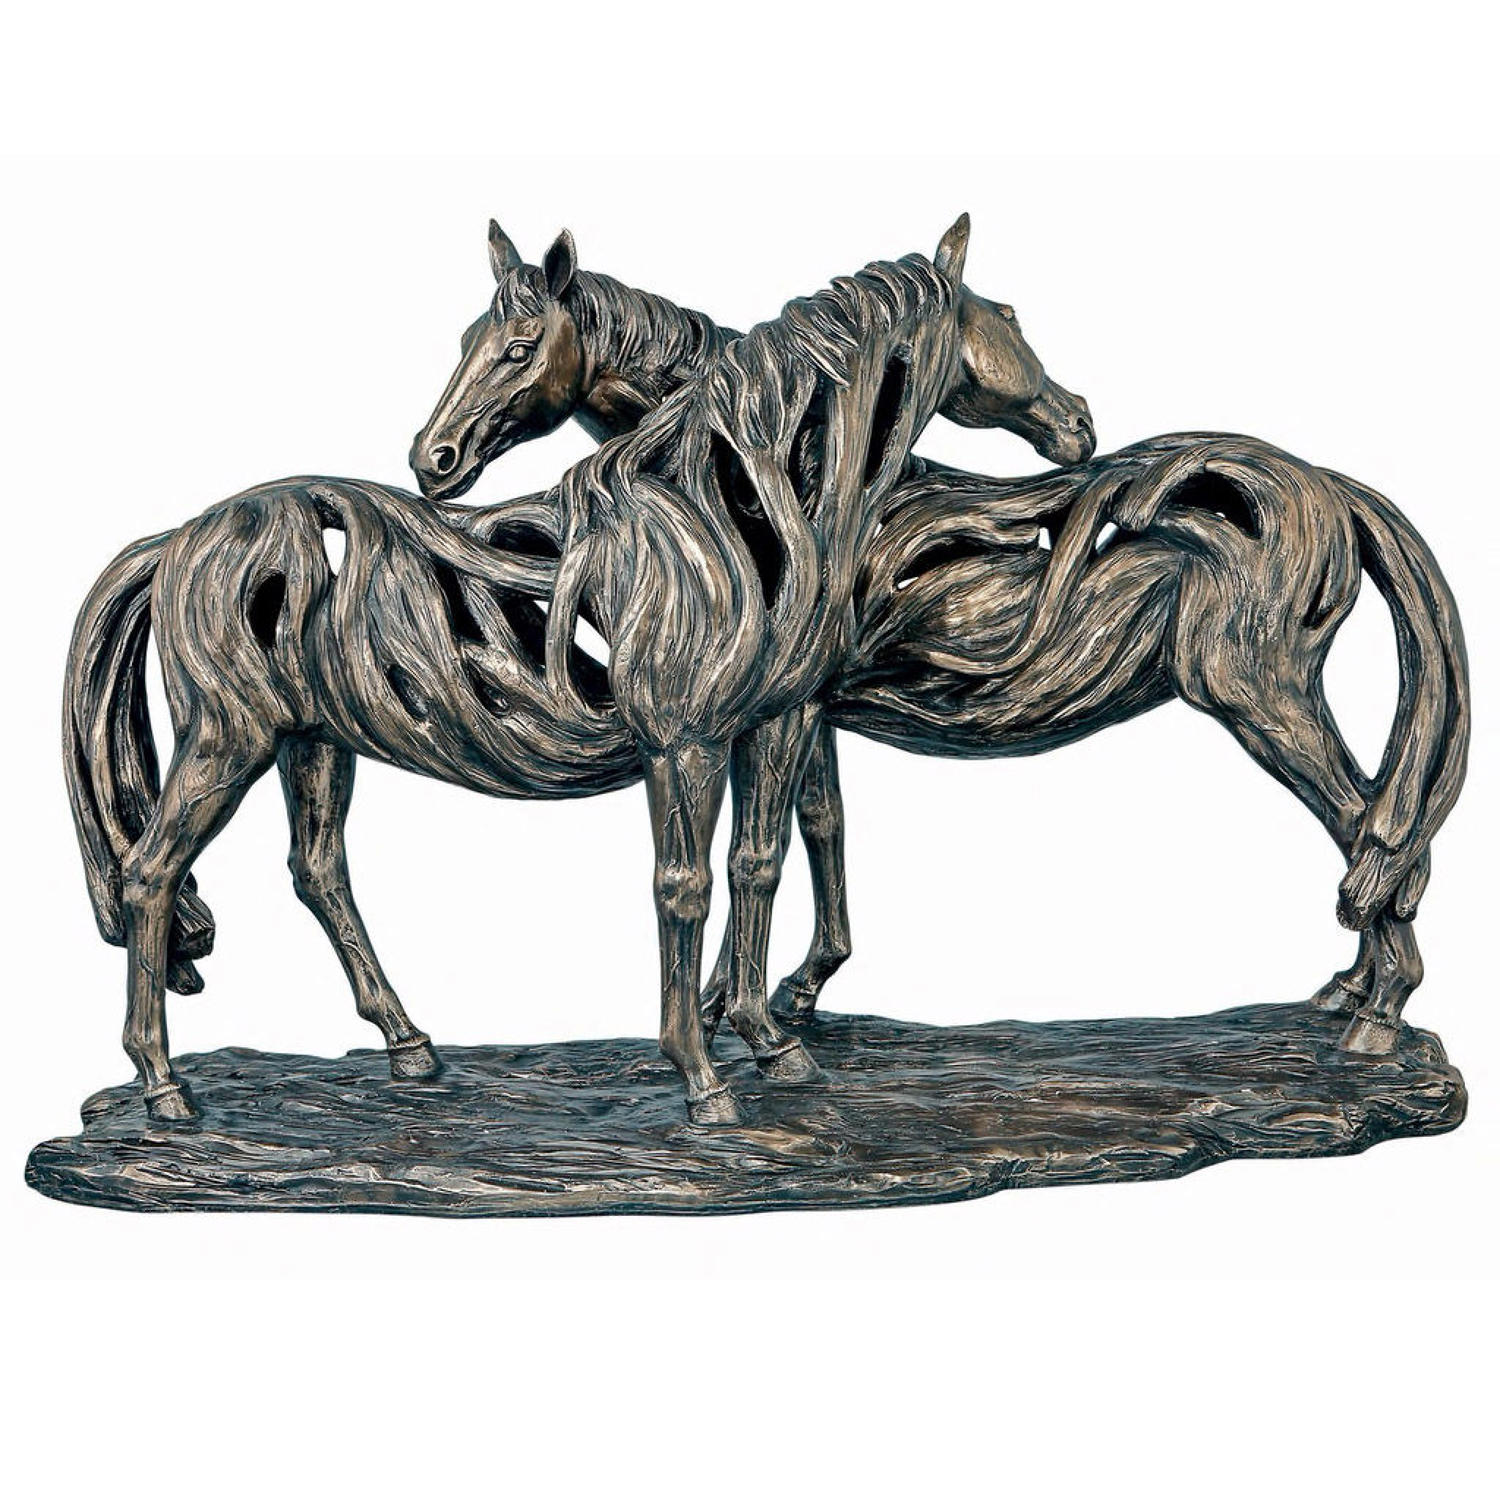 A Pair of Horses cold cast bronze sculpture